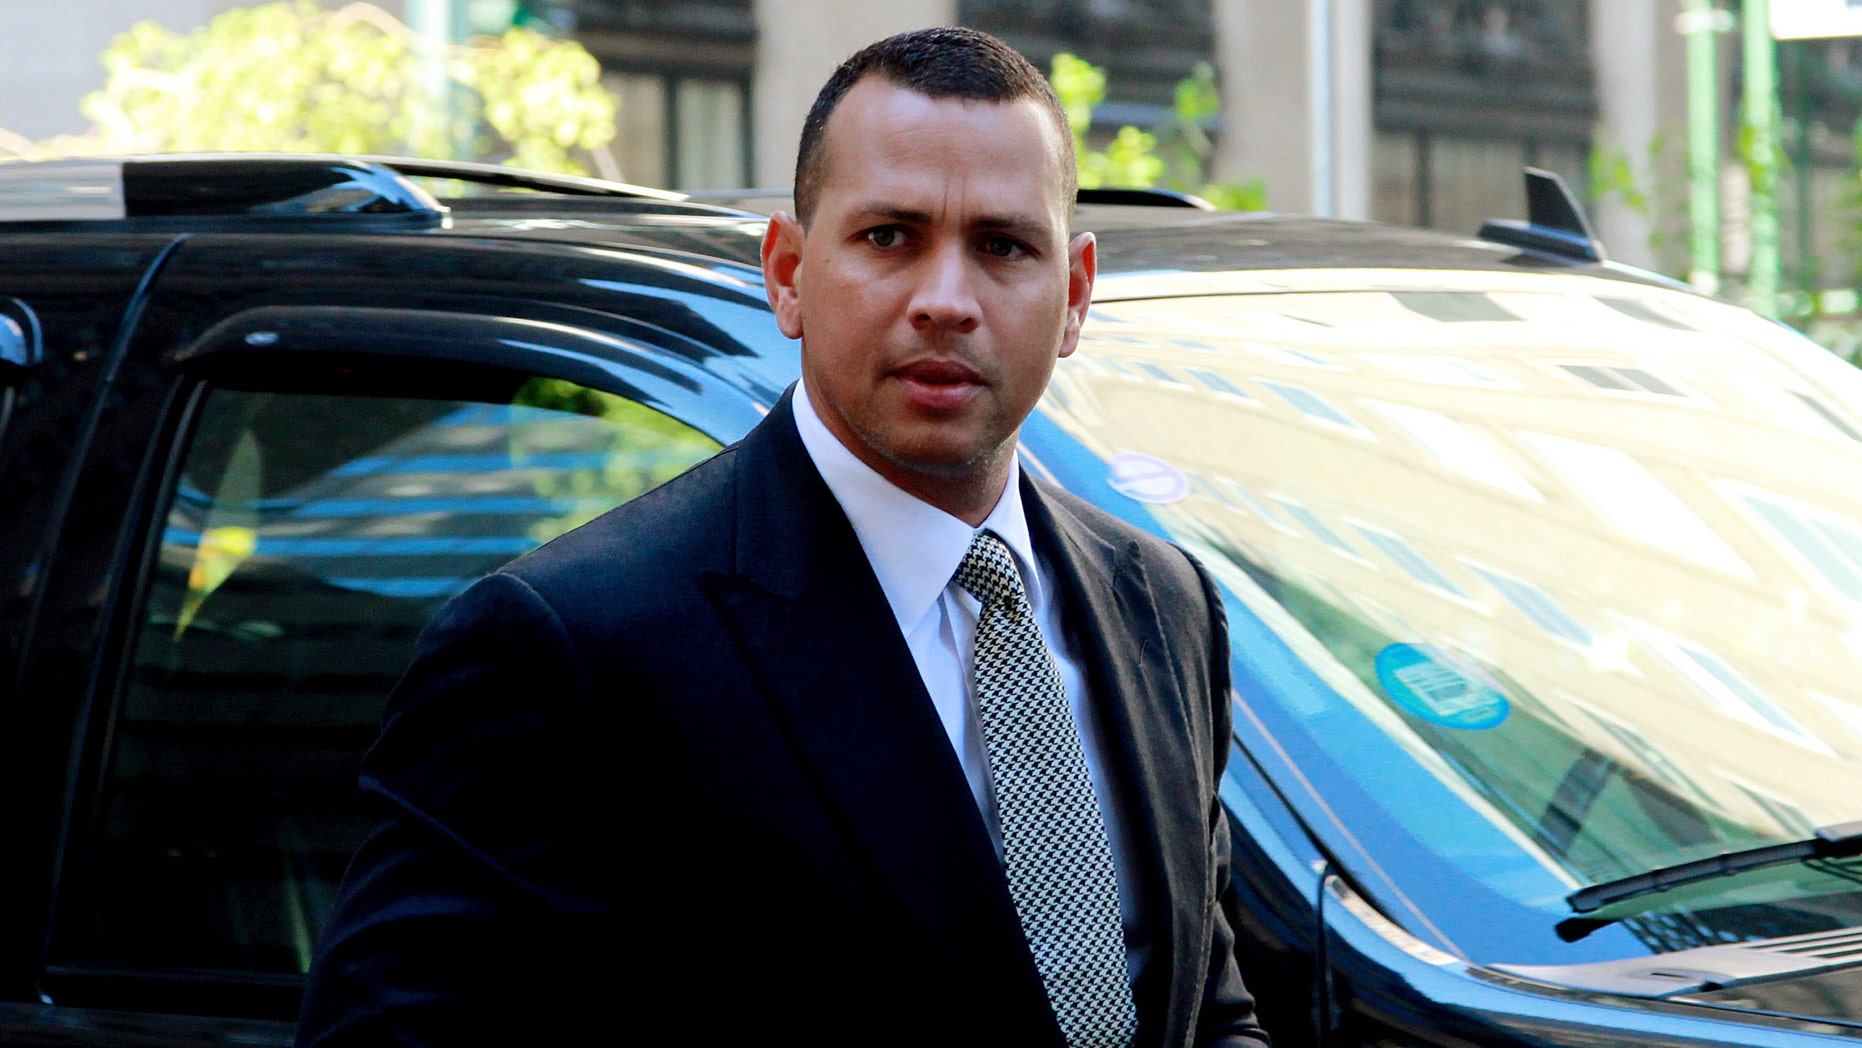 This Oct. 1, 2013 photo shows New York Yankees' Alex Rodriguez arriving at the offices of MLB in New York.